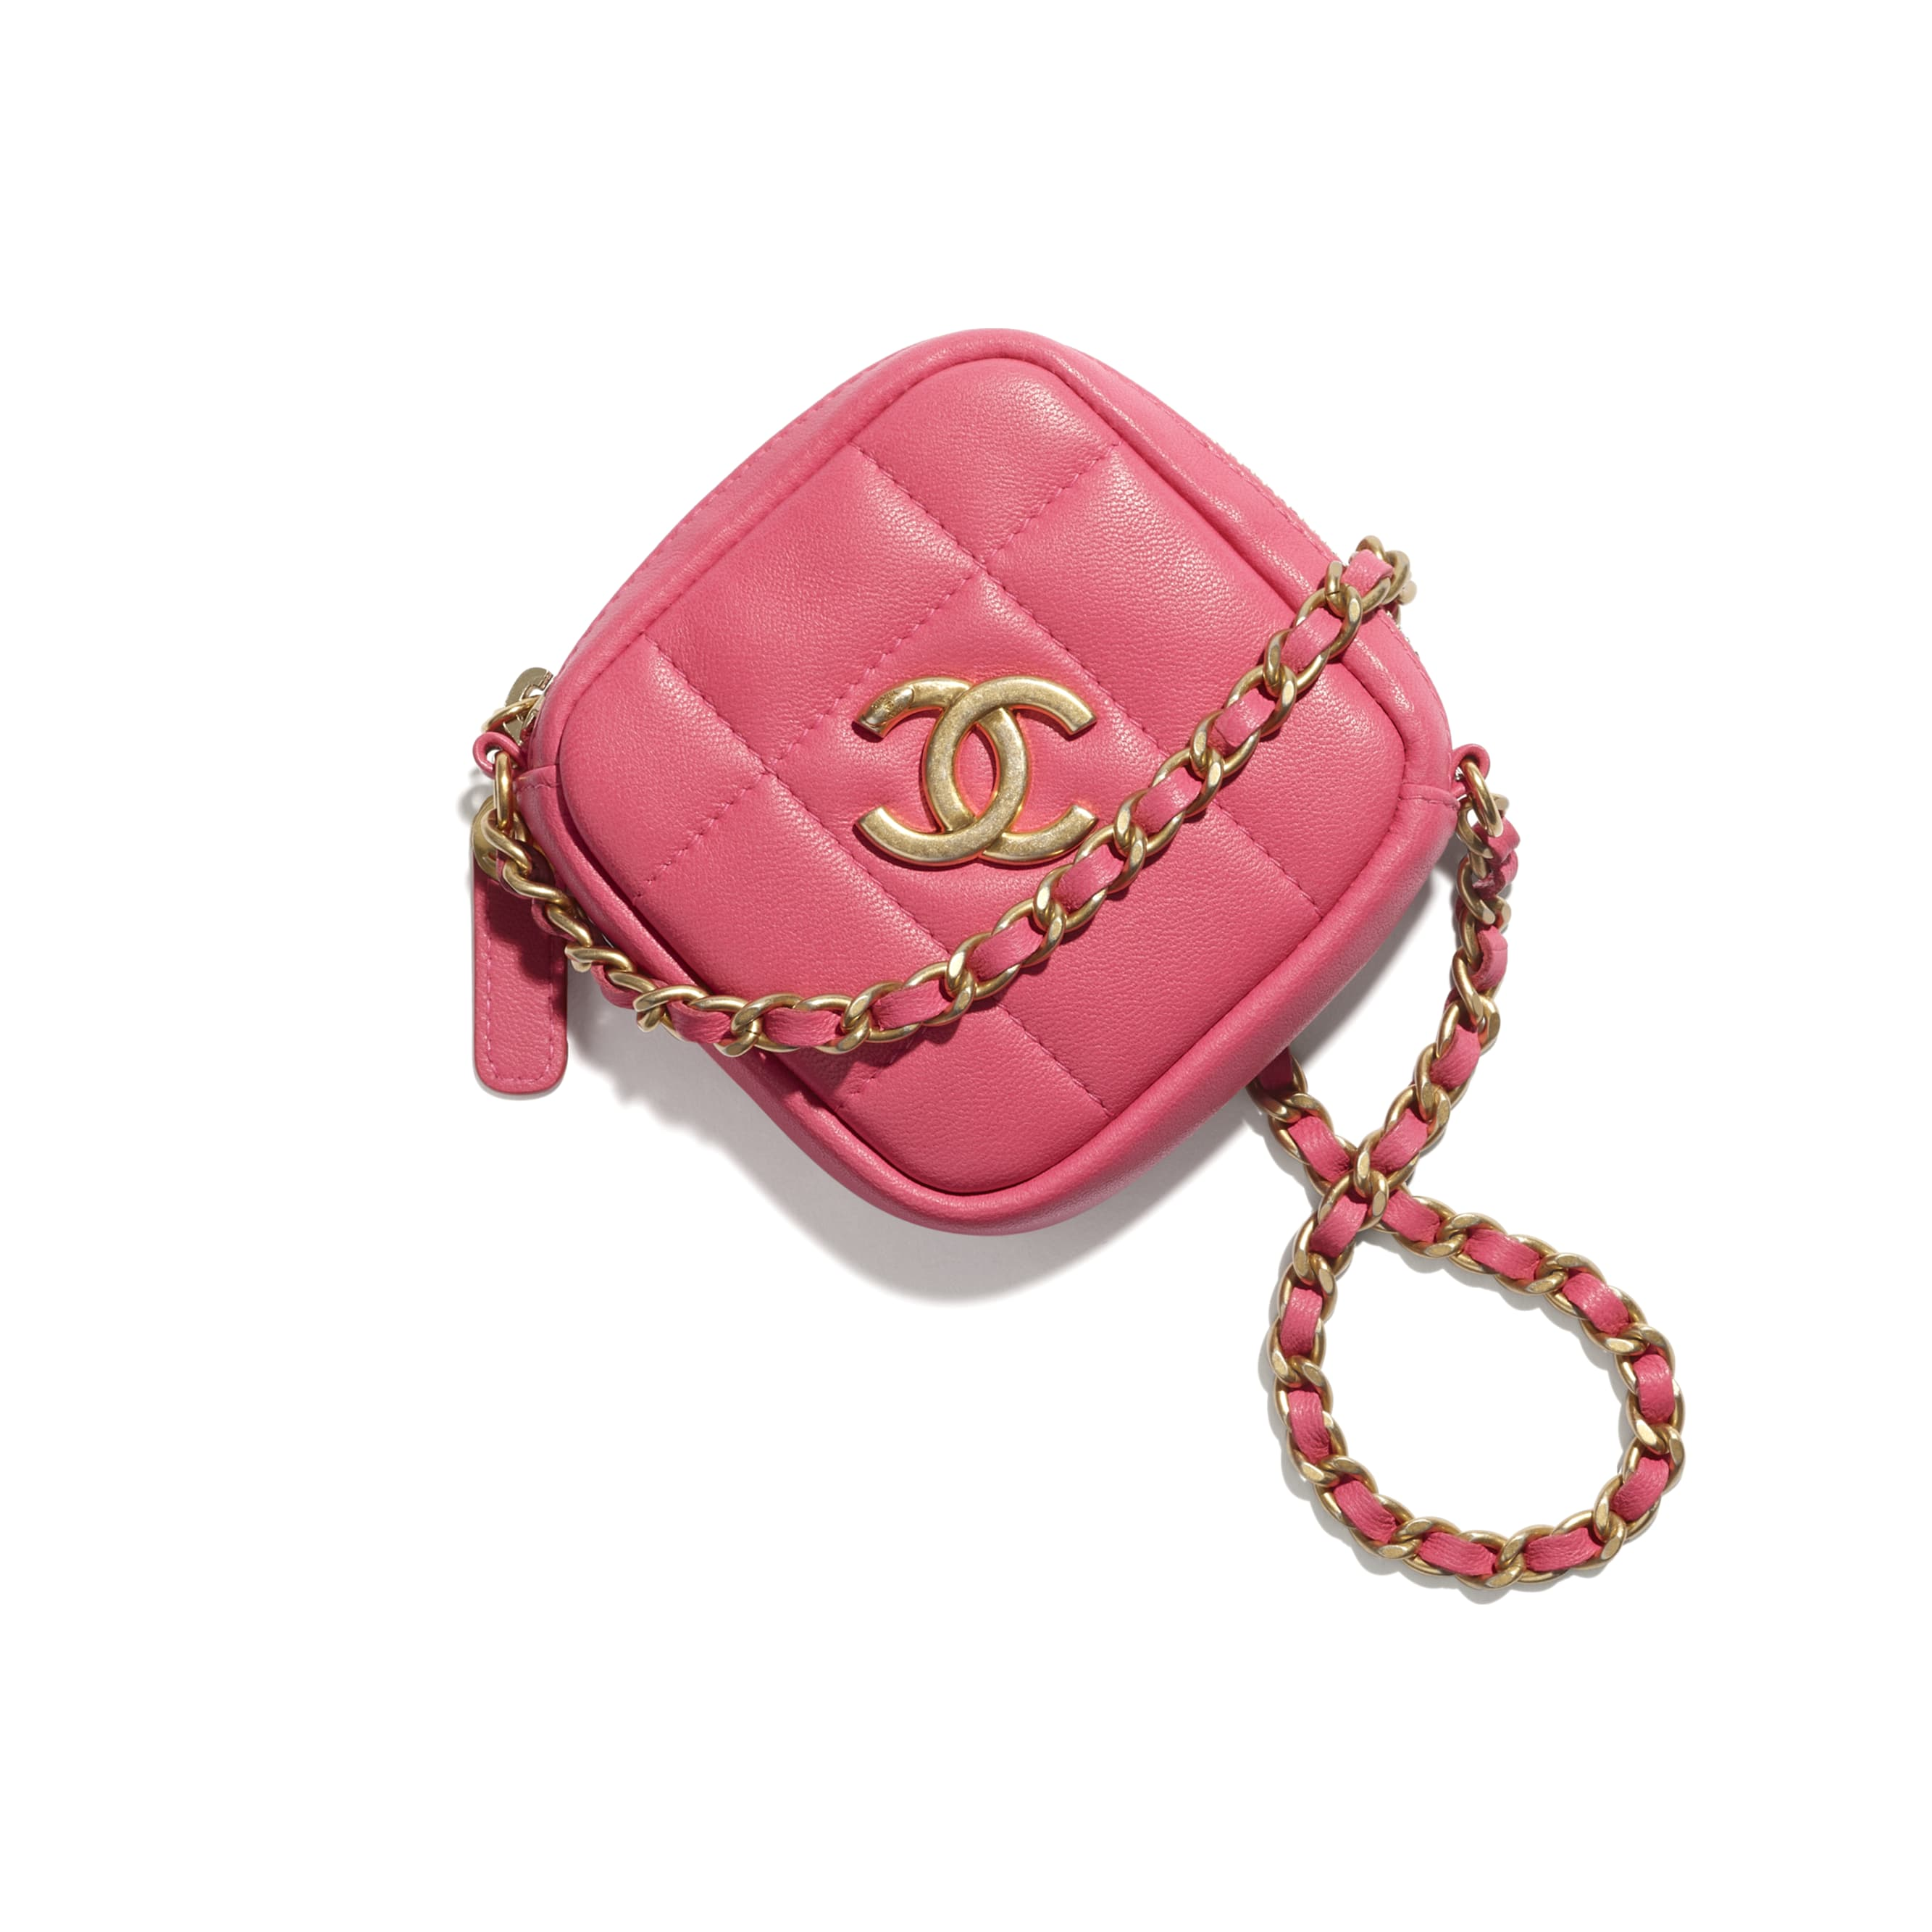 Clutch With Chain - Pink - Lambskin - CHANEL - Default view - see standard sized version